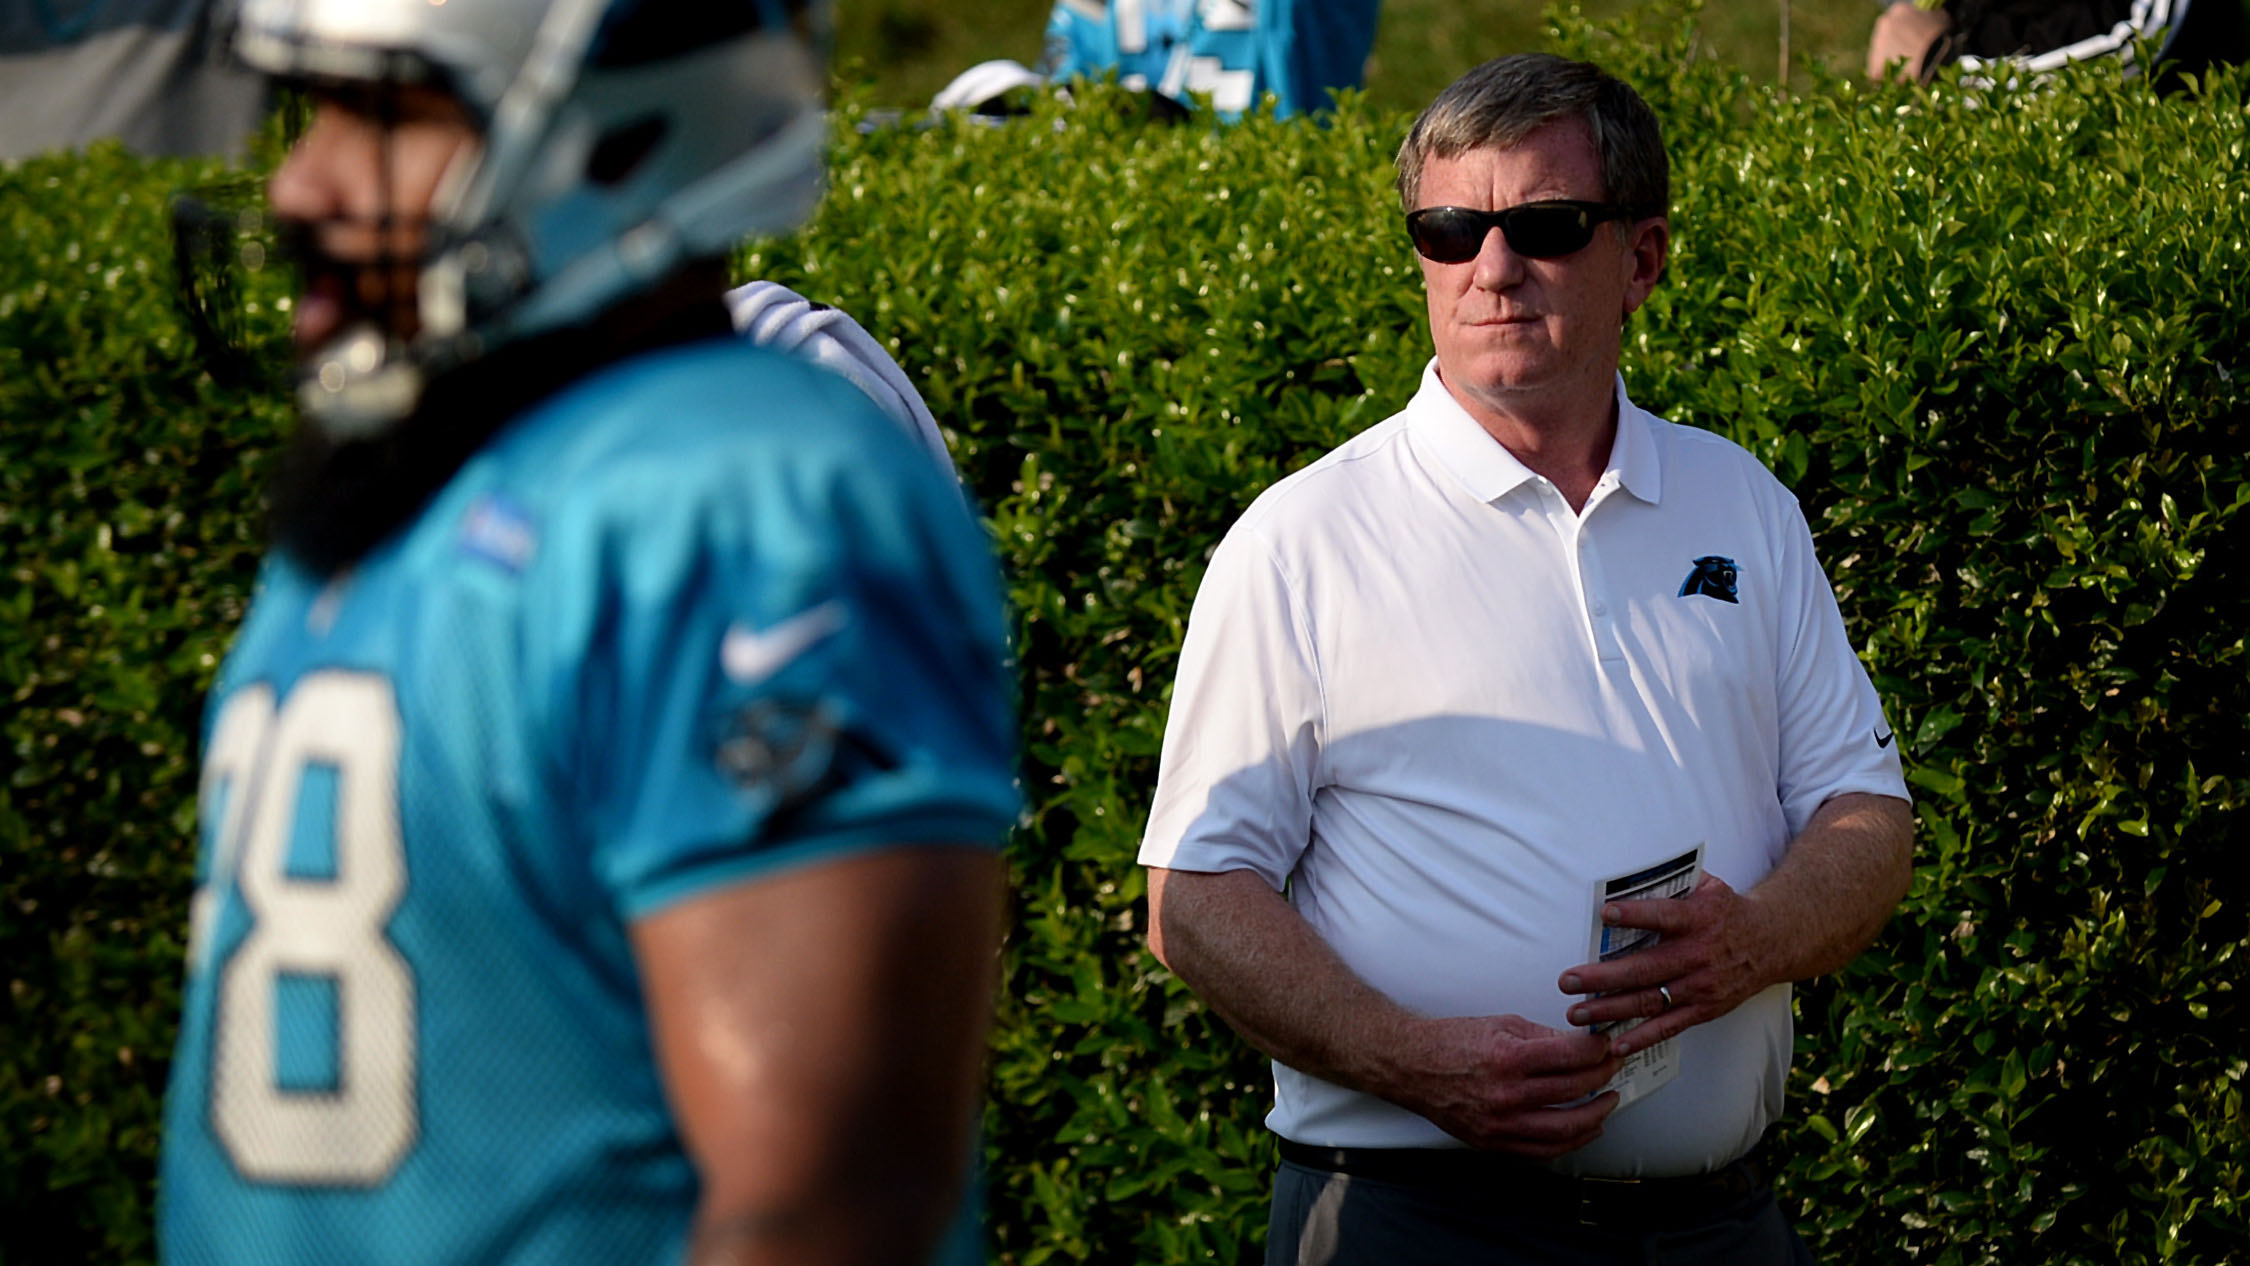 Panthers-interim-gm-marty-hurney-personal-conduct-investigation